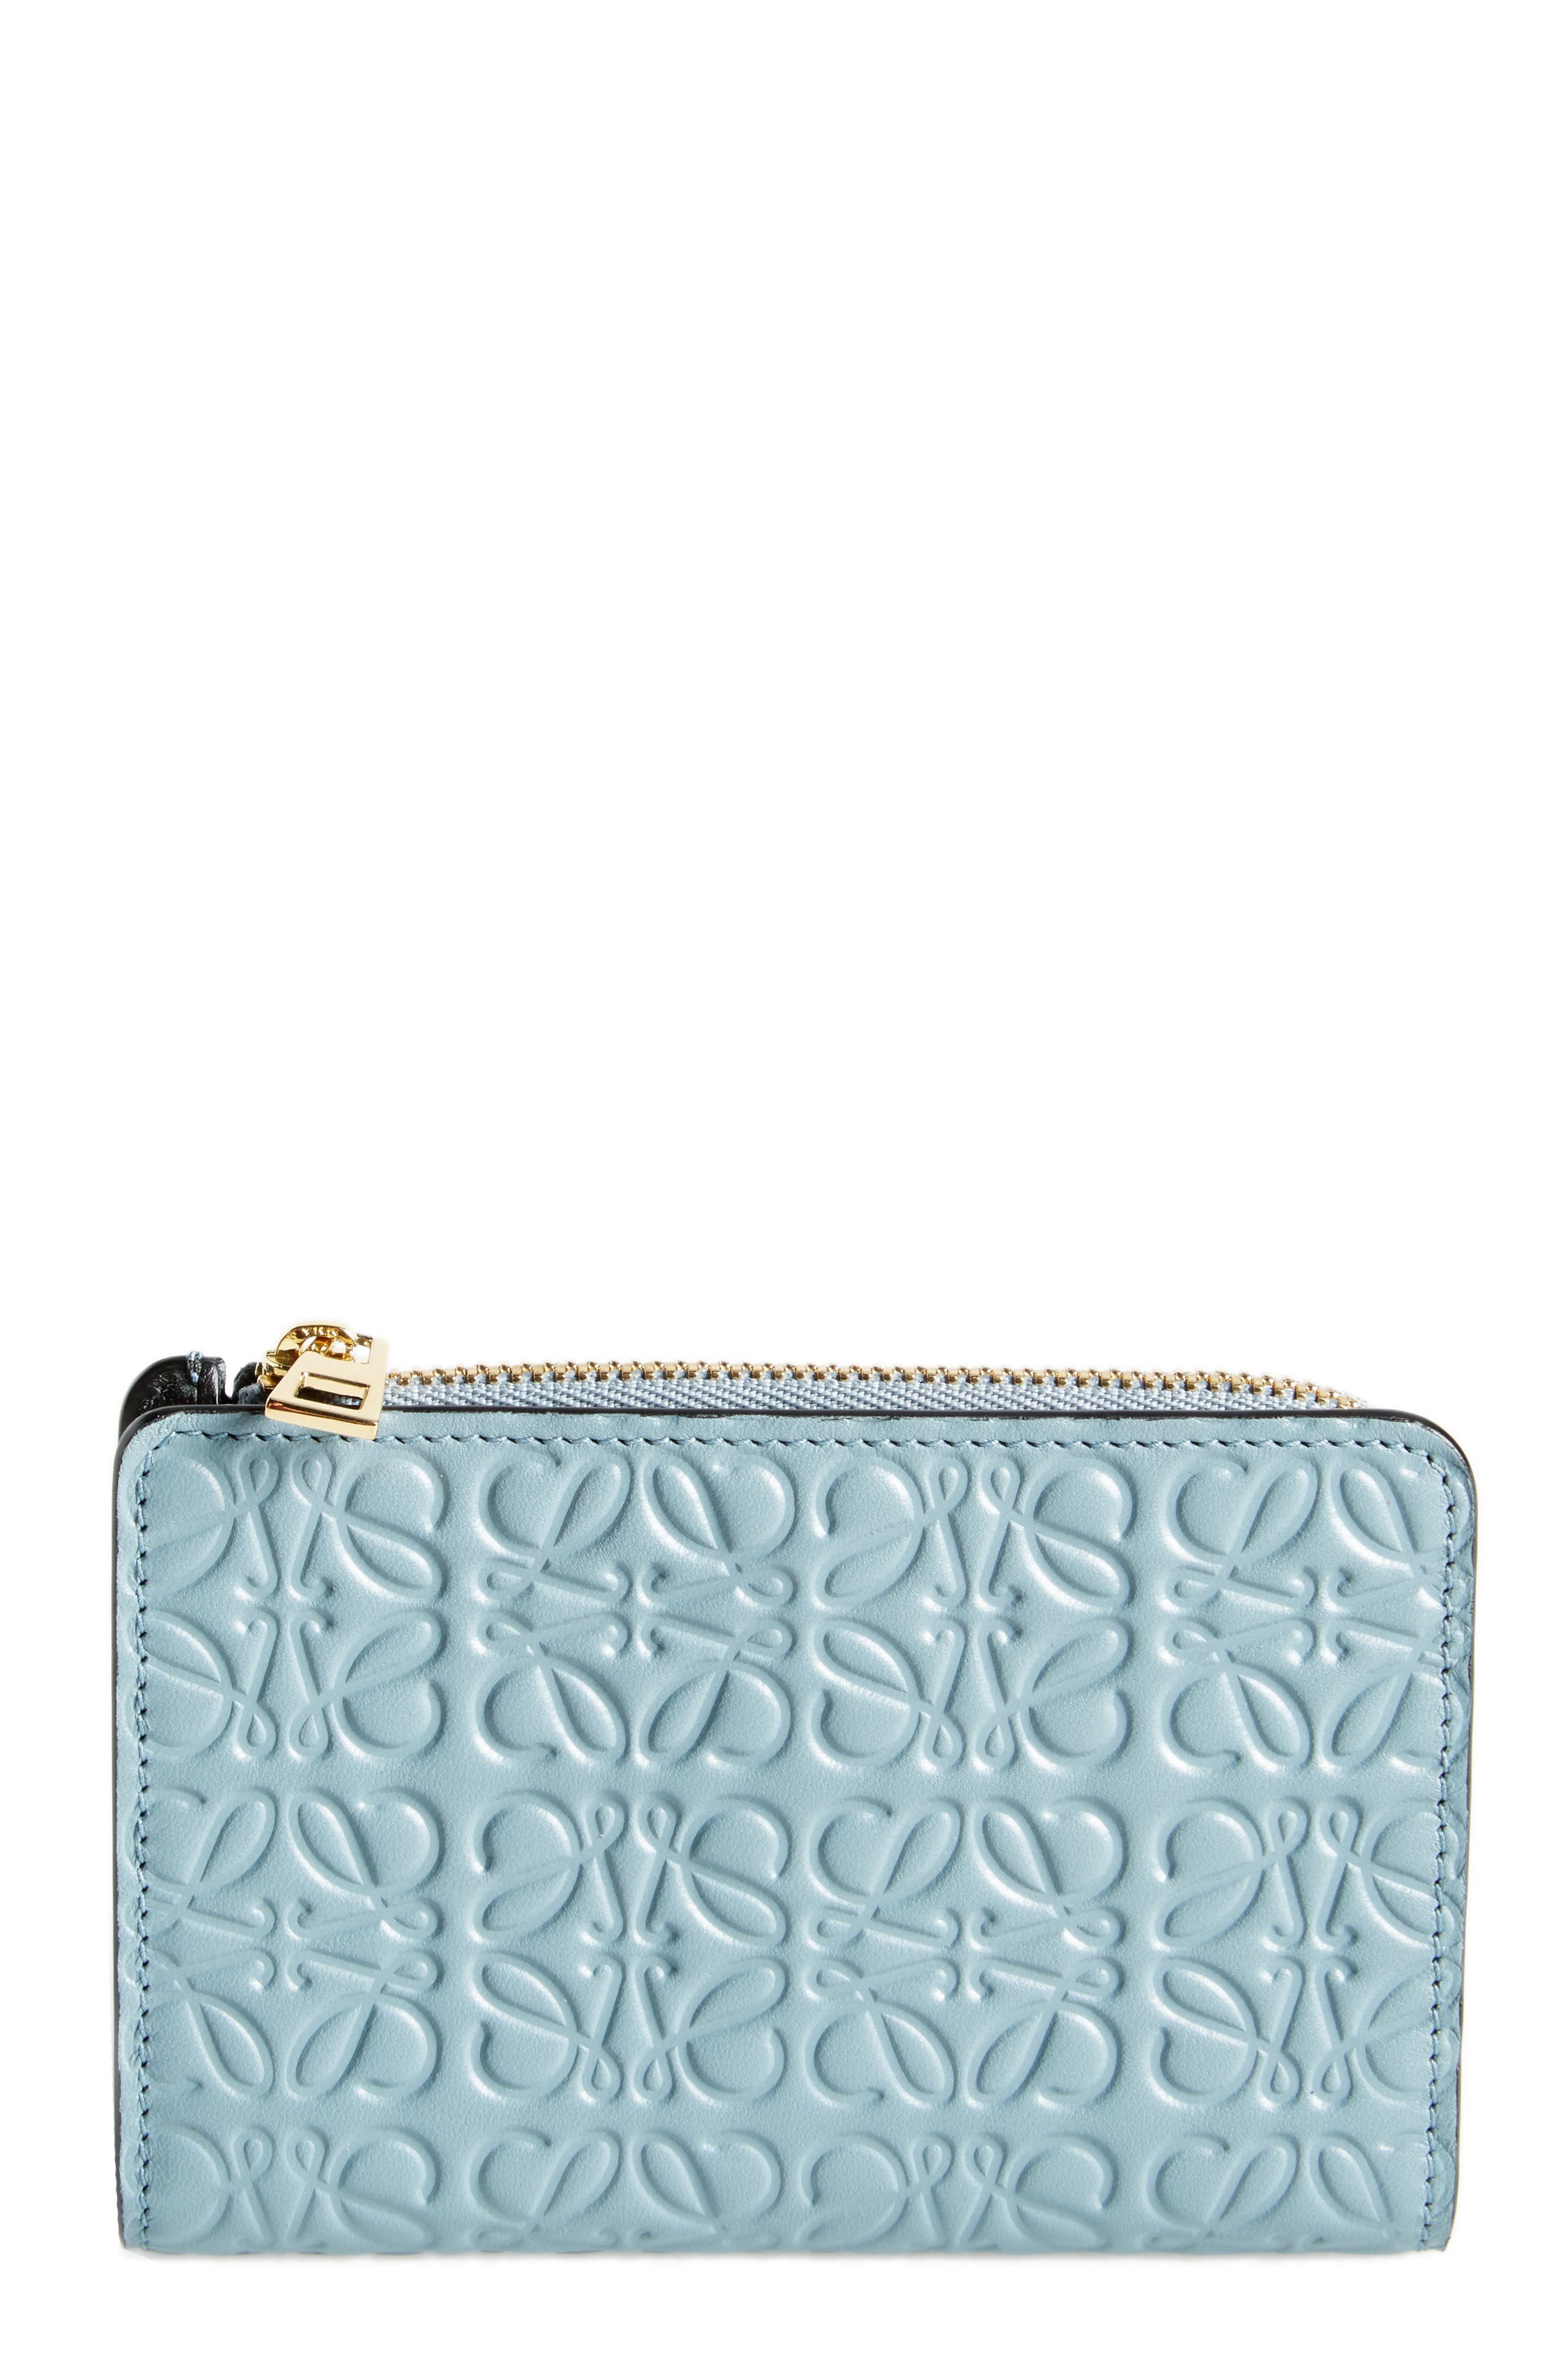 Small Leather Zip Wallet,                             Main thumbnail 1, color,                             421